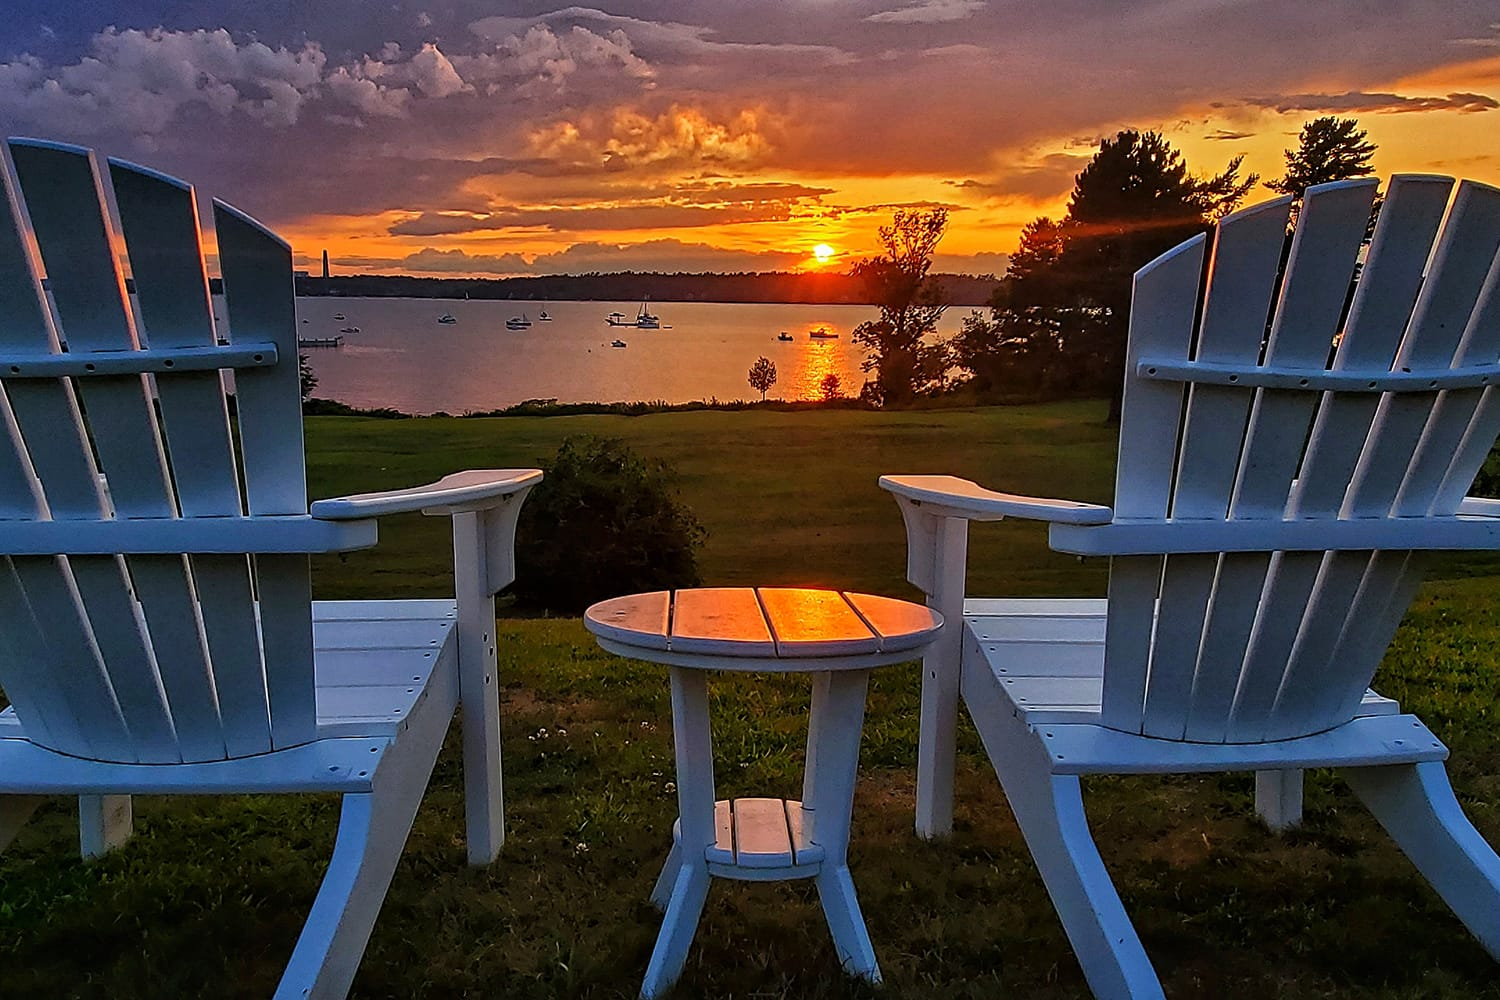 Two empty chairs overlooking a sunset on Chebeague Island, Maine, USA